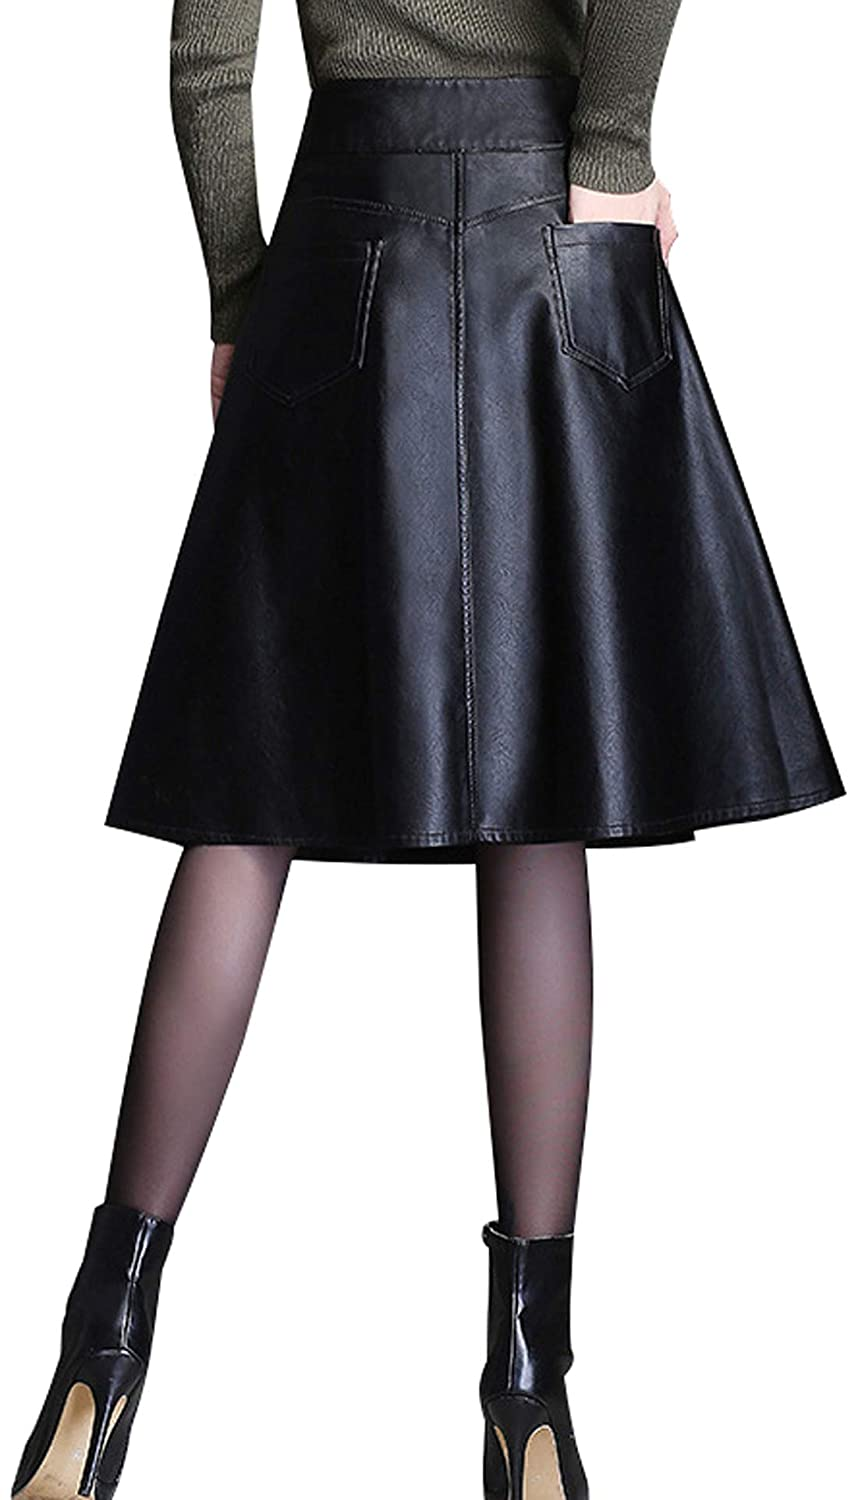 eb138ab0e29 chouyatou Women s Graceful A-Line Flare Pleated Faux Leather Midi Skirt  with Pocket at Amazon Women s Clothing store